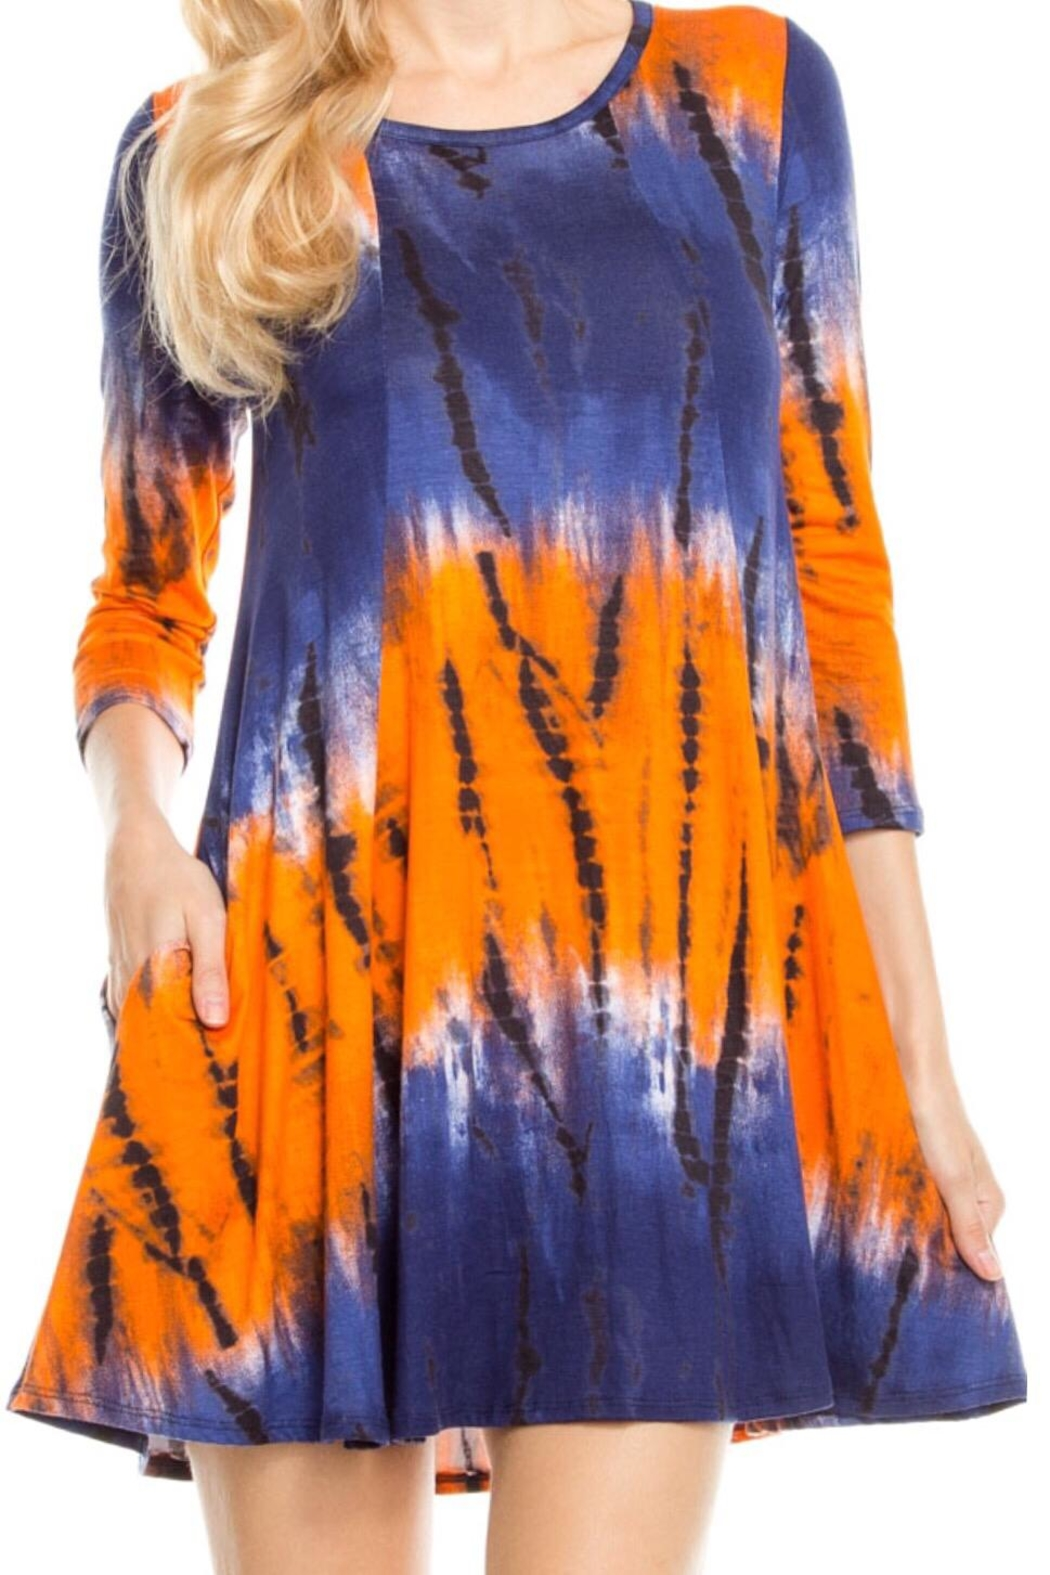 KITTY COUTURE  Tie Dye Tunic - Main Image